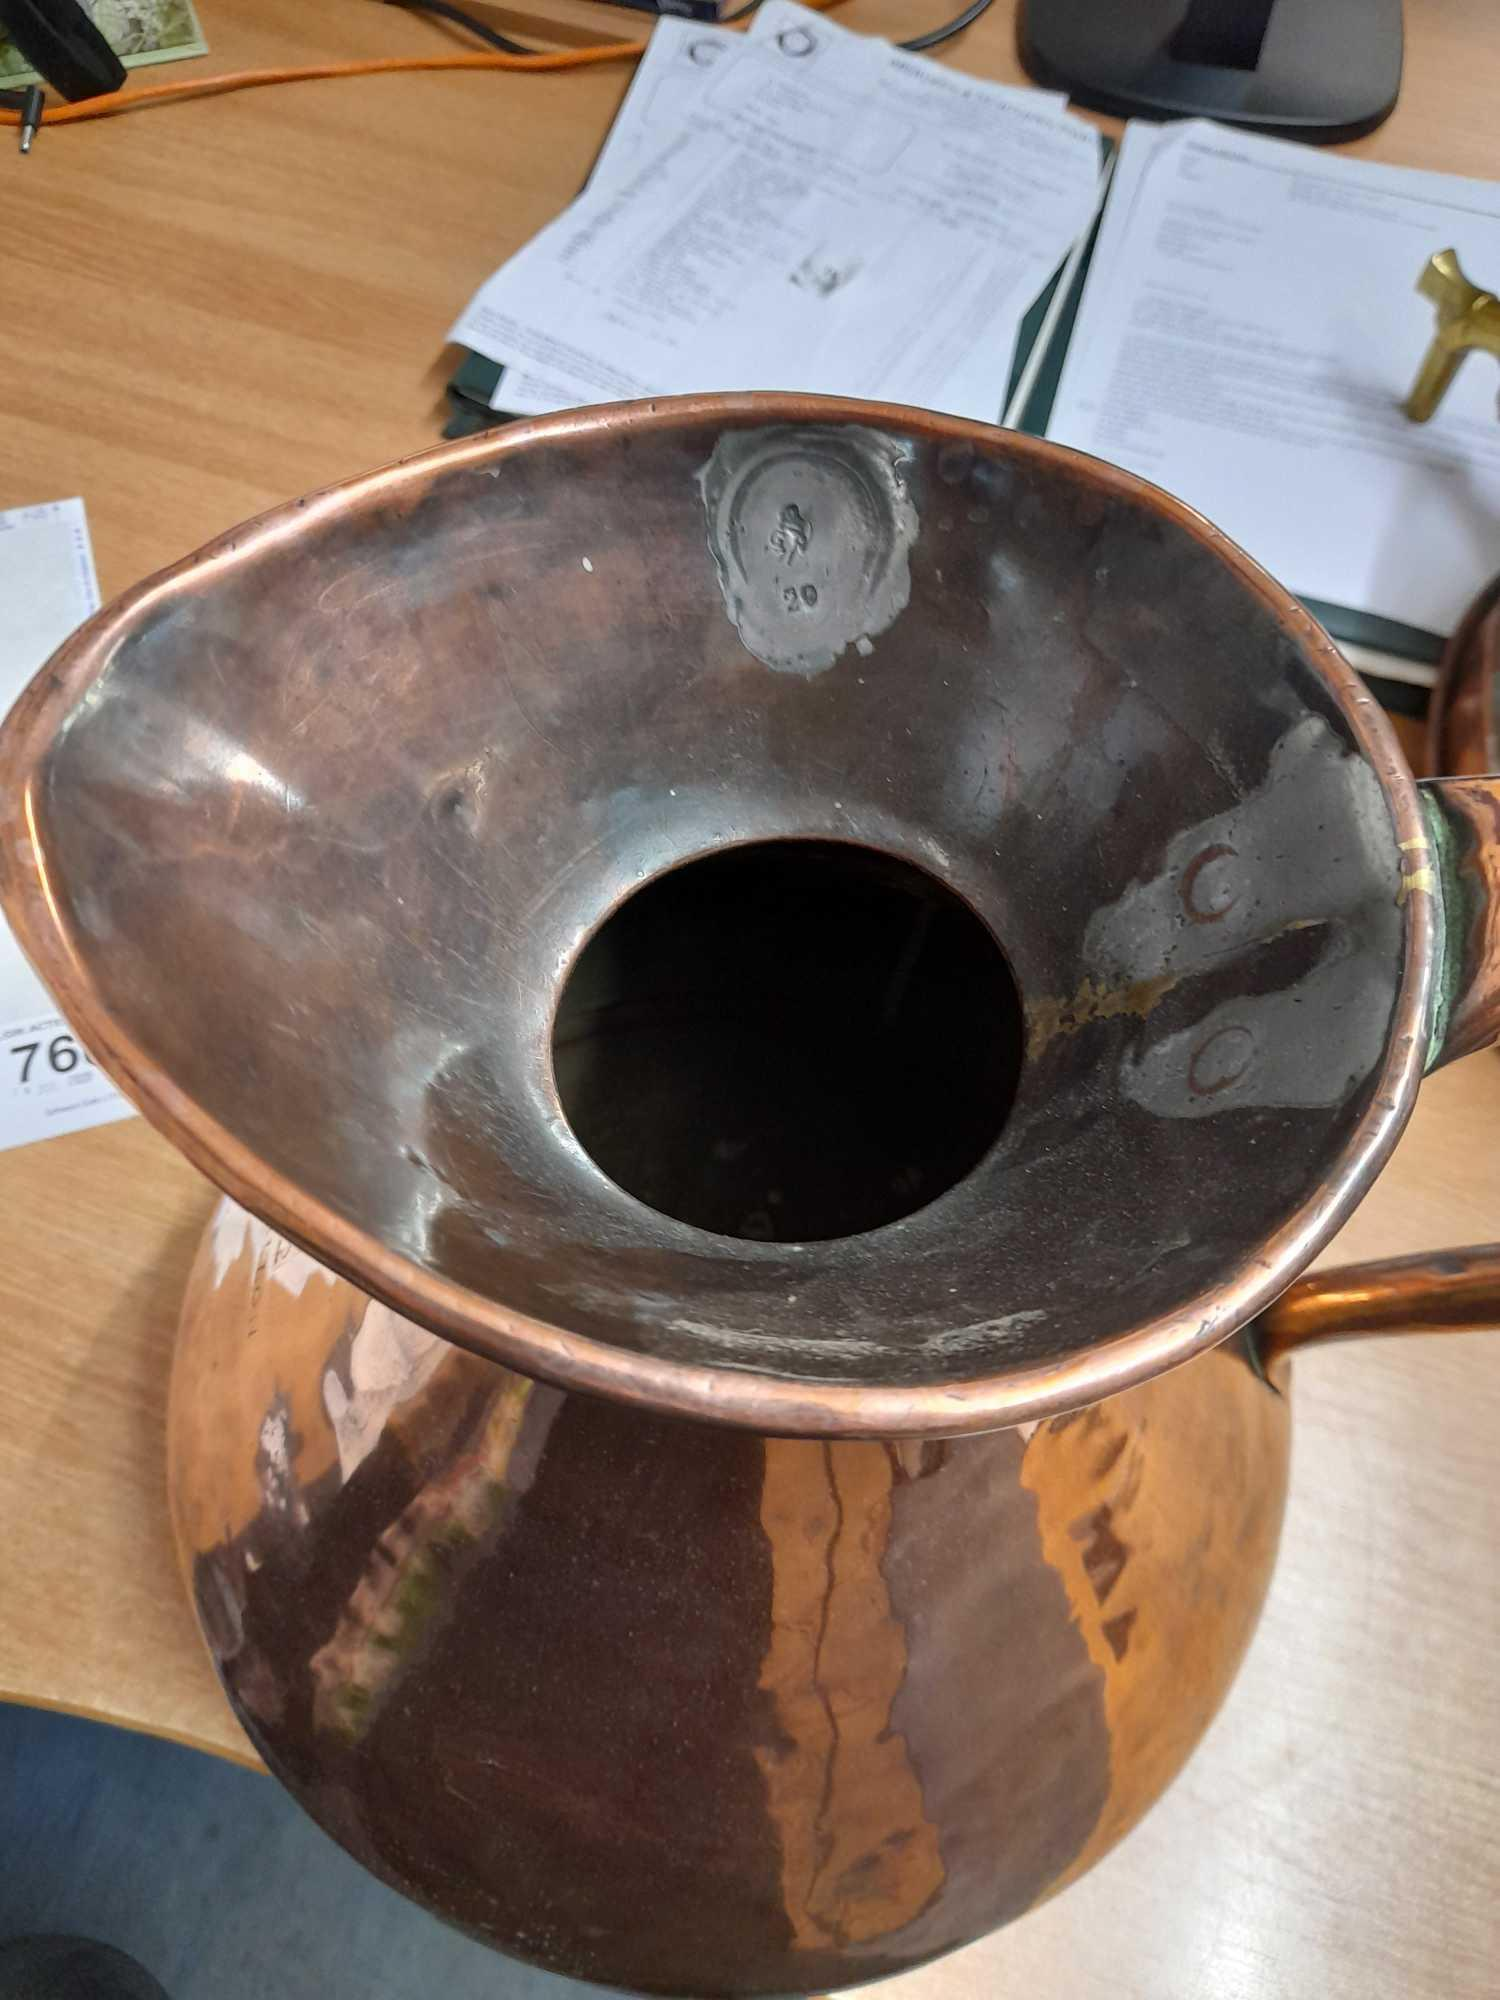 2 GALLON COPPER WHISKY MEASURING JUG - Image 5 of 7